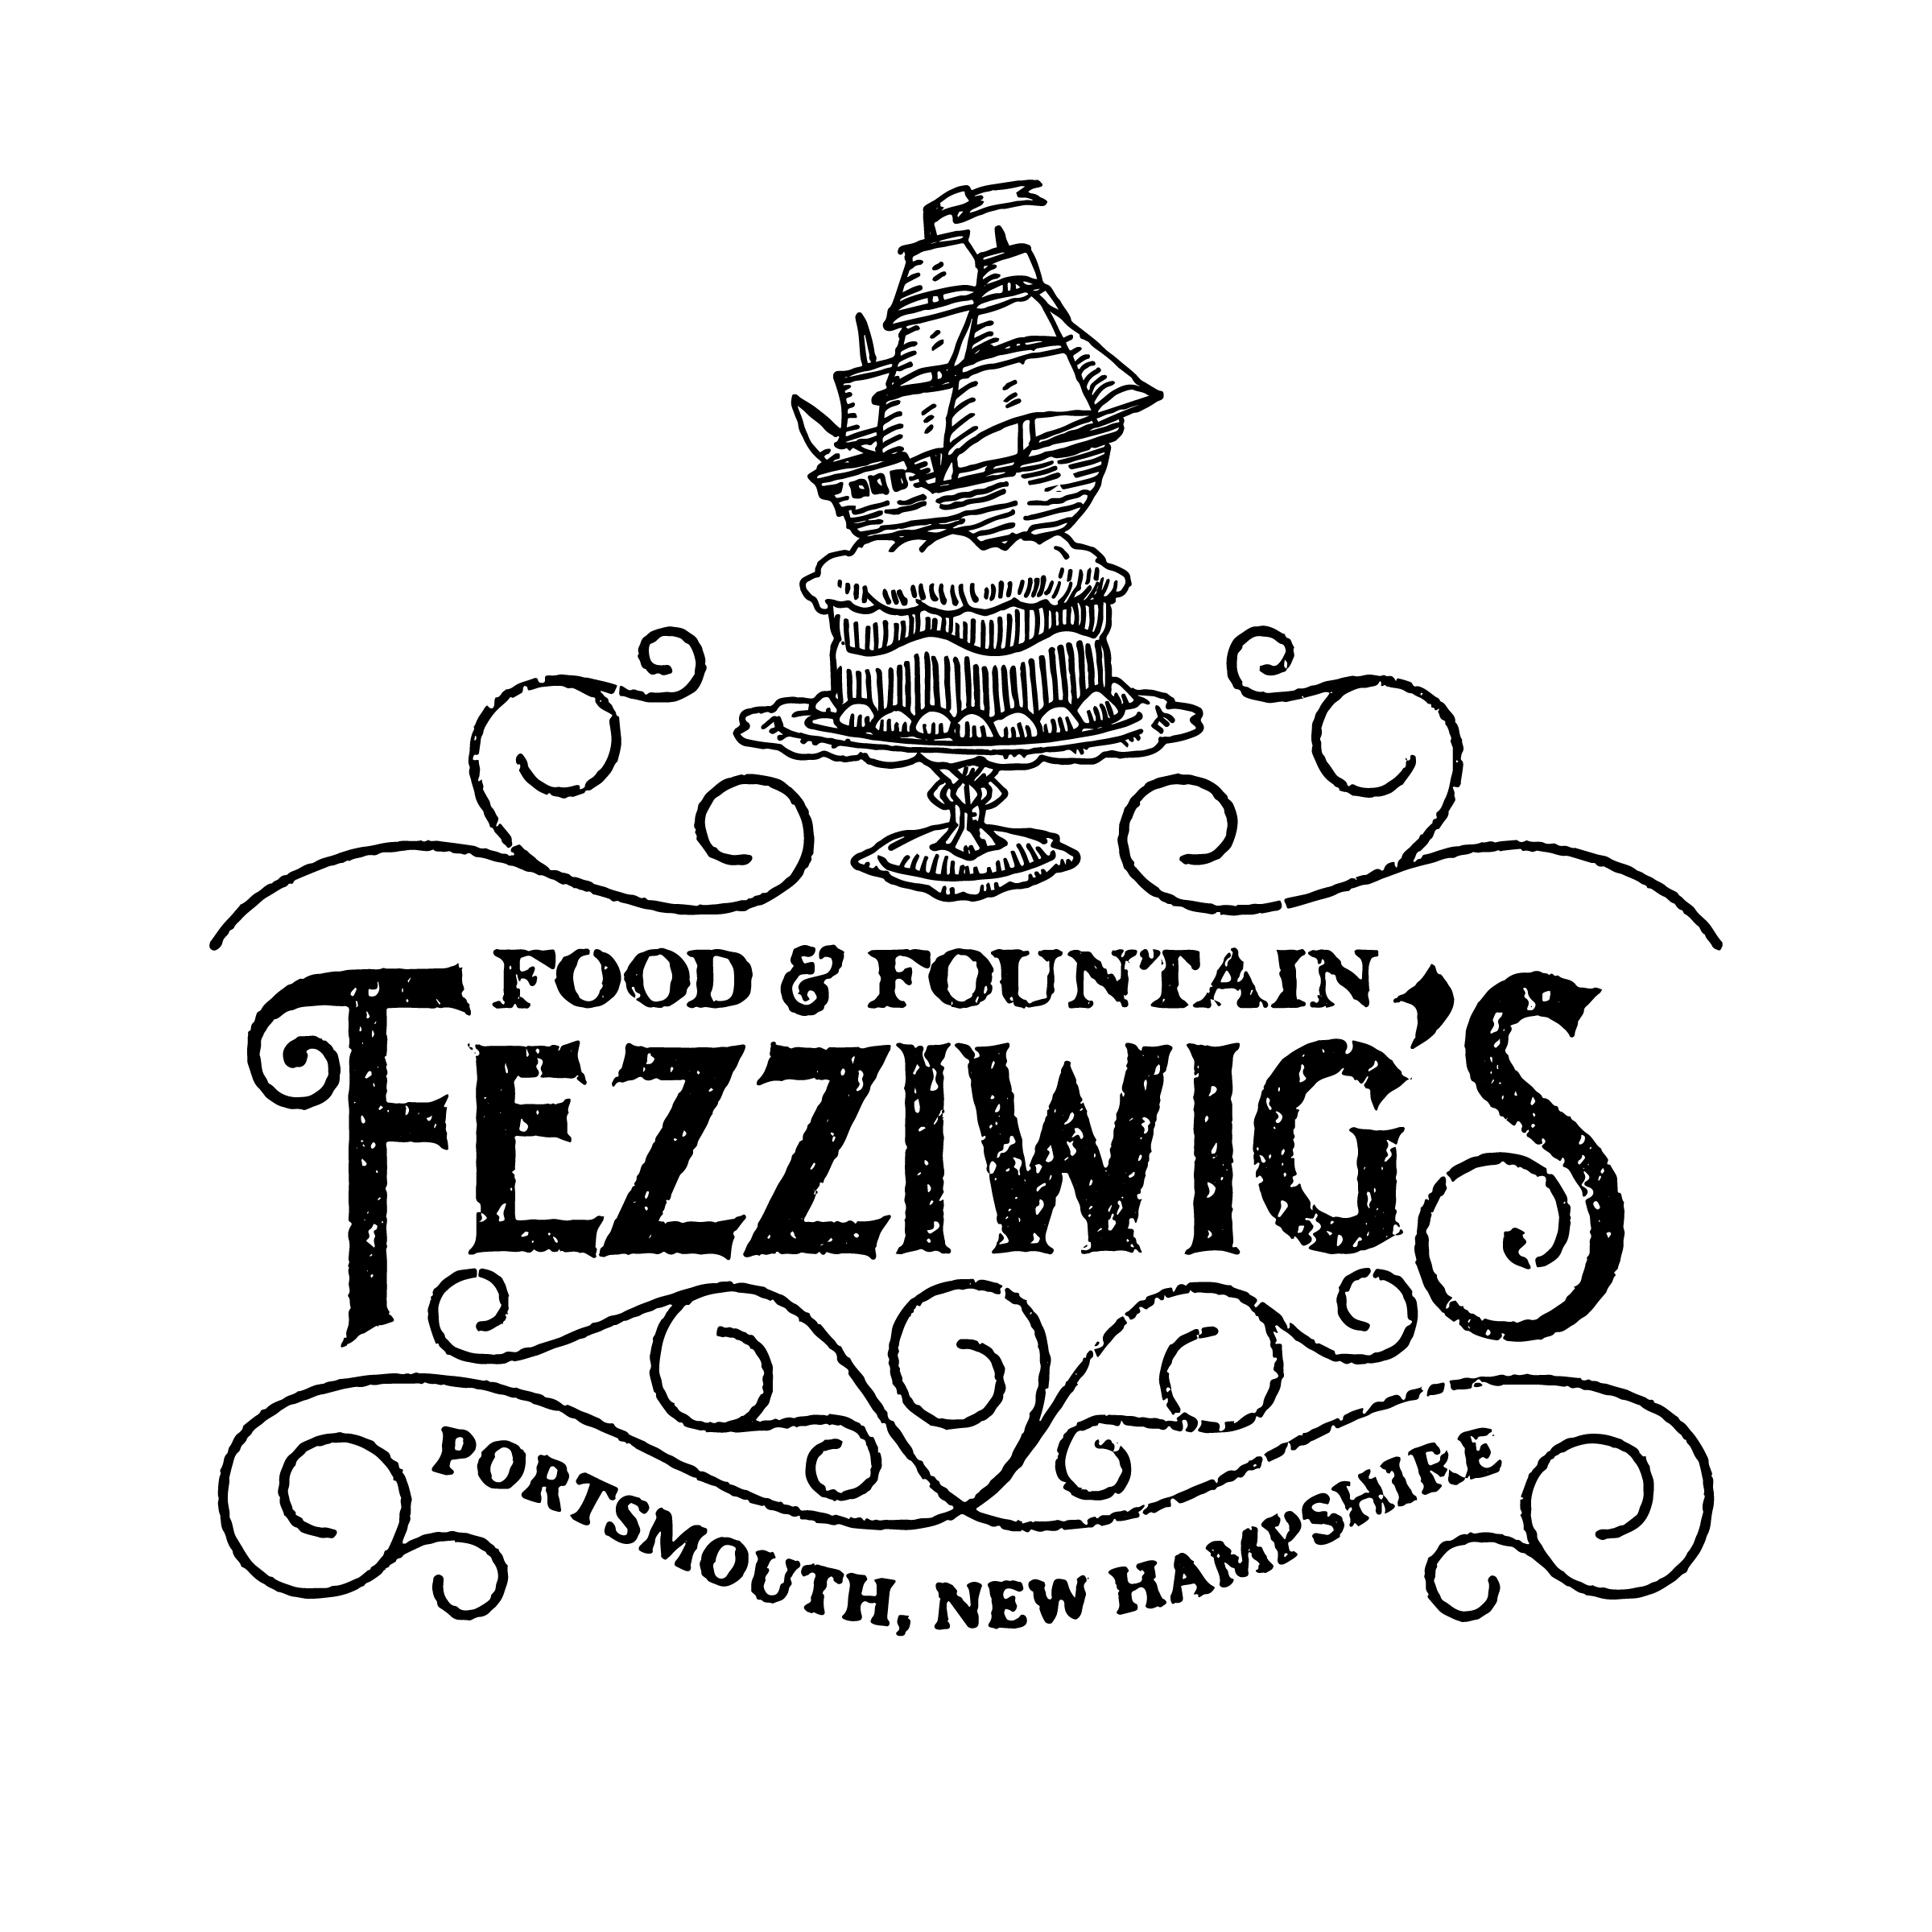 Fezziwig's Food & Fountain